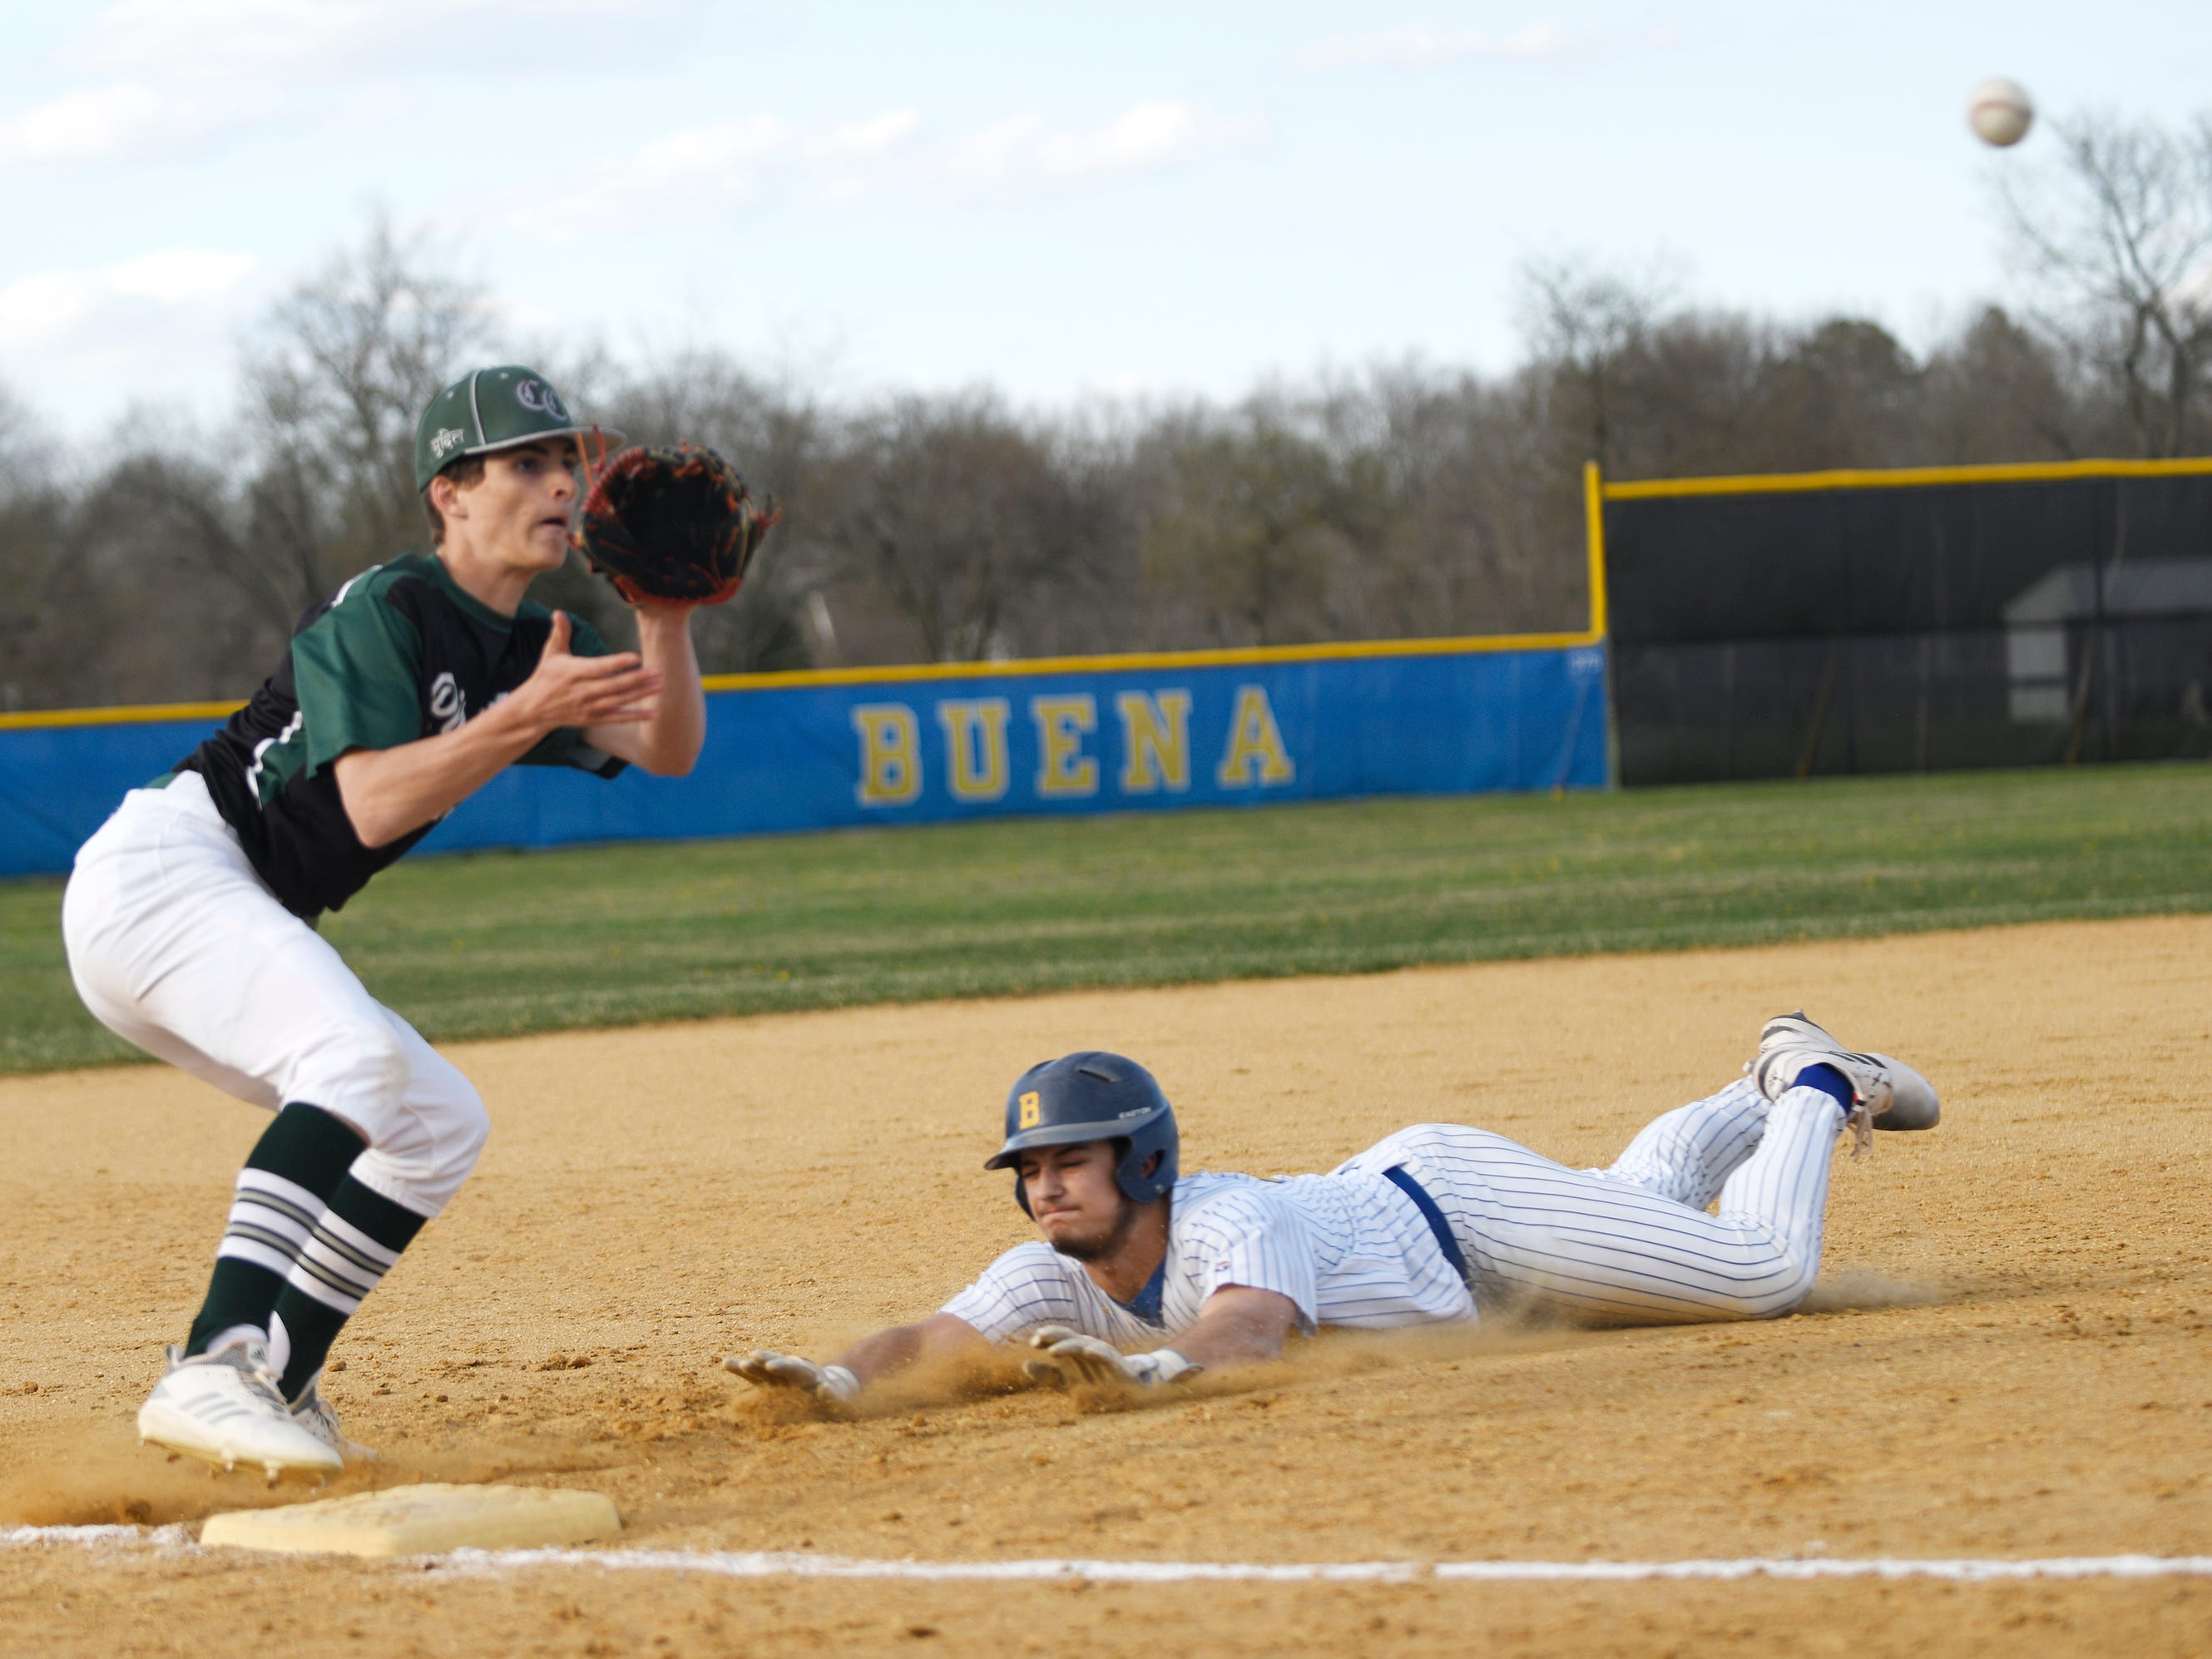 Buena catcher Jake Guglielmi steals third base during a game against Cedar Creek on Wednesday, April 10, 2019.